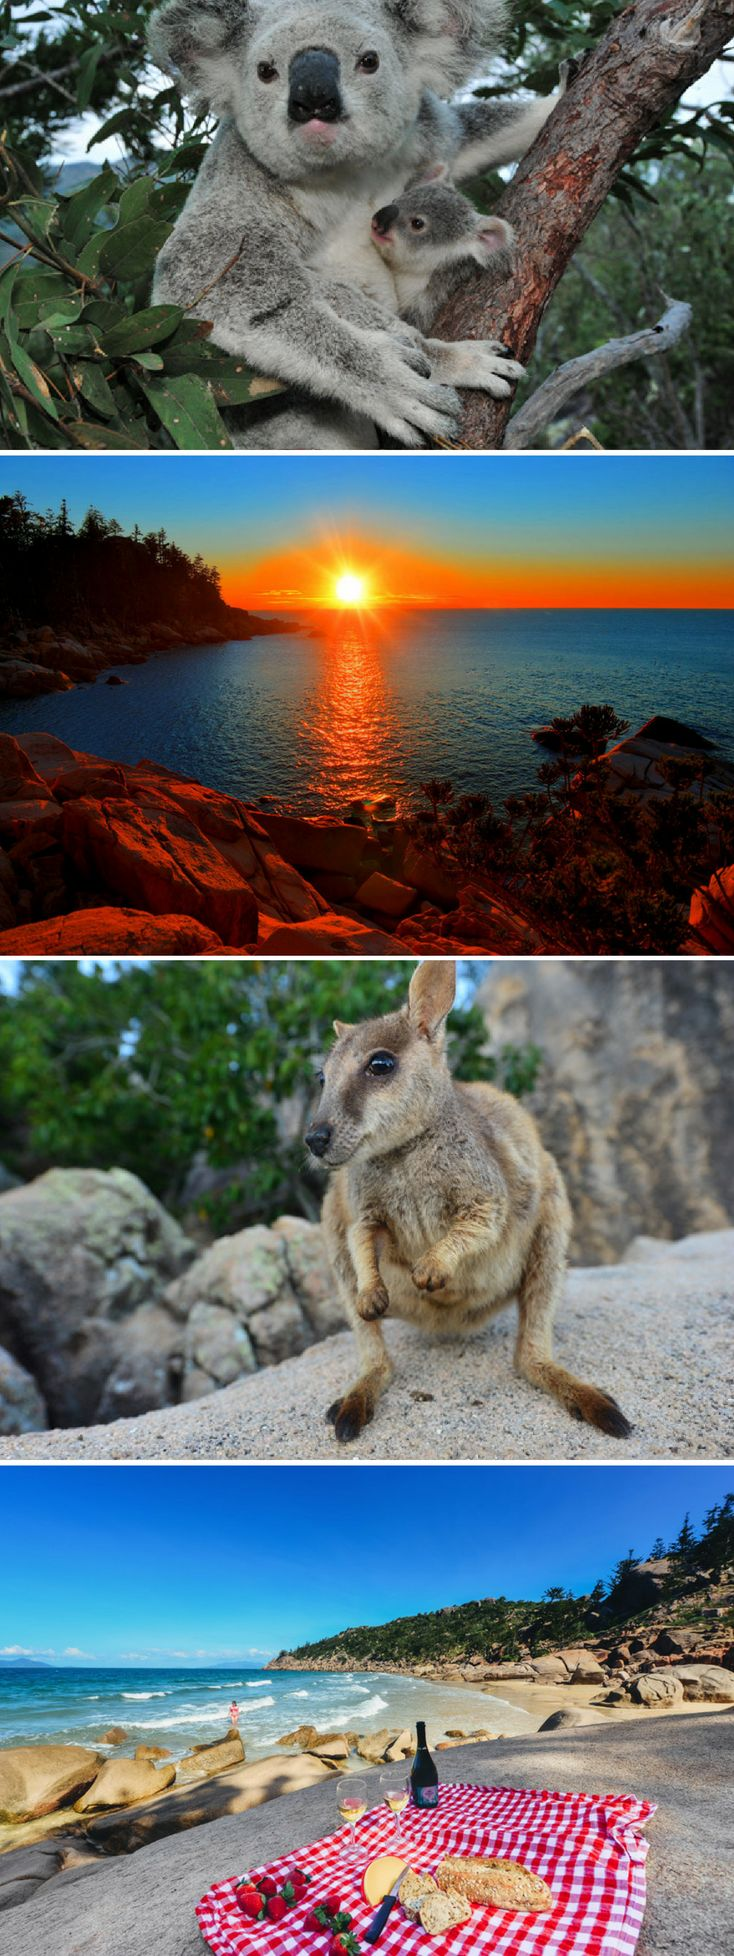 Magnetic Island, Australia. Koalas, beaches, sunsets and so much more!! RePinned by : www.powercouplelife.com